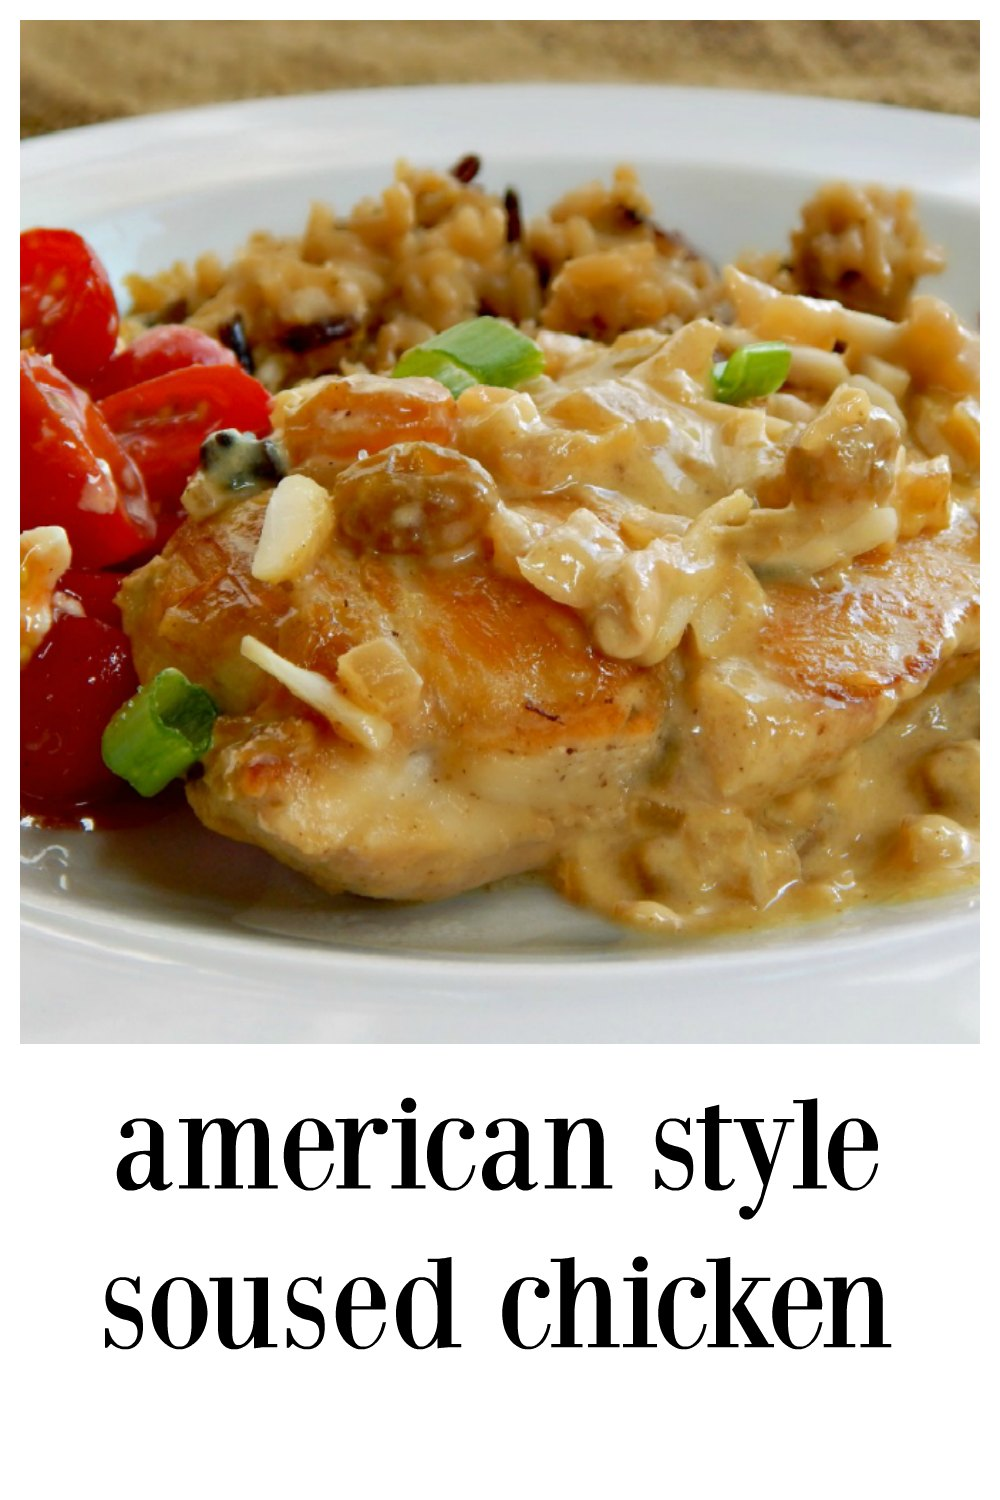 Simple American Style Soused Chicken; creamy, saucy, scented with cumin & clove, studded with raisins & almonds, and accented with lime. Company worthy & easy enough for a weeknight! #SousedChicken #ChickenWine